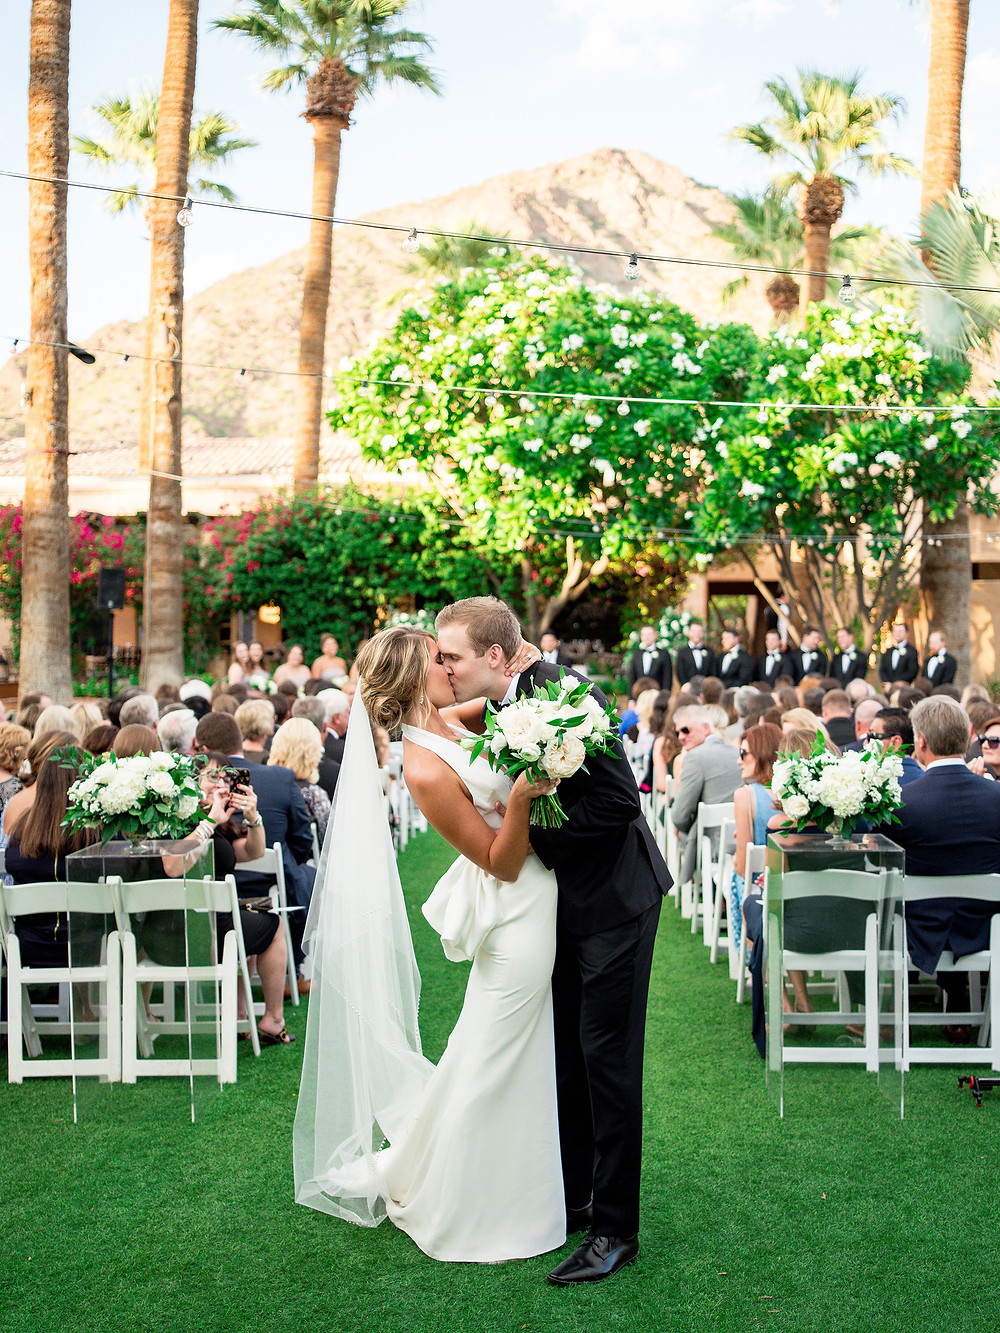 Royal Palms Wedding Ceremony | Scottsdale, AZ | Elyse Hall Wedding Photography